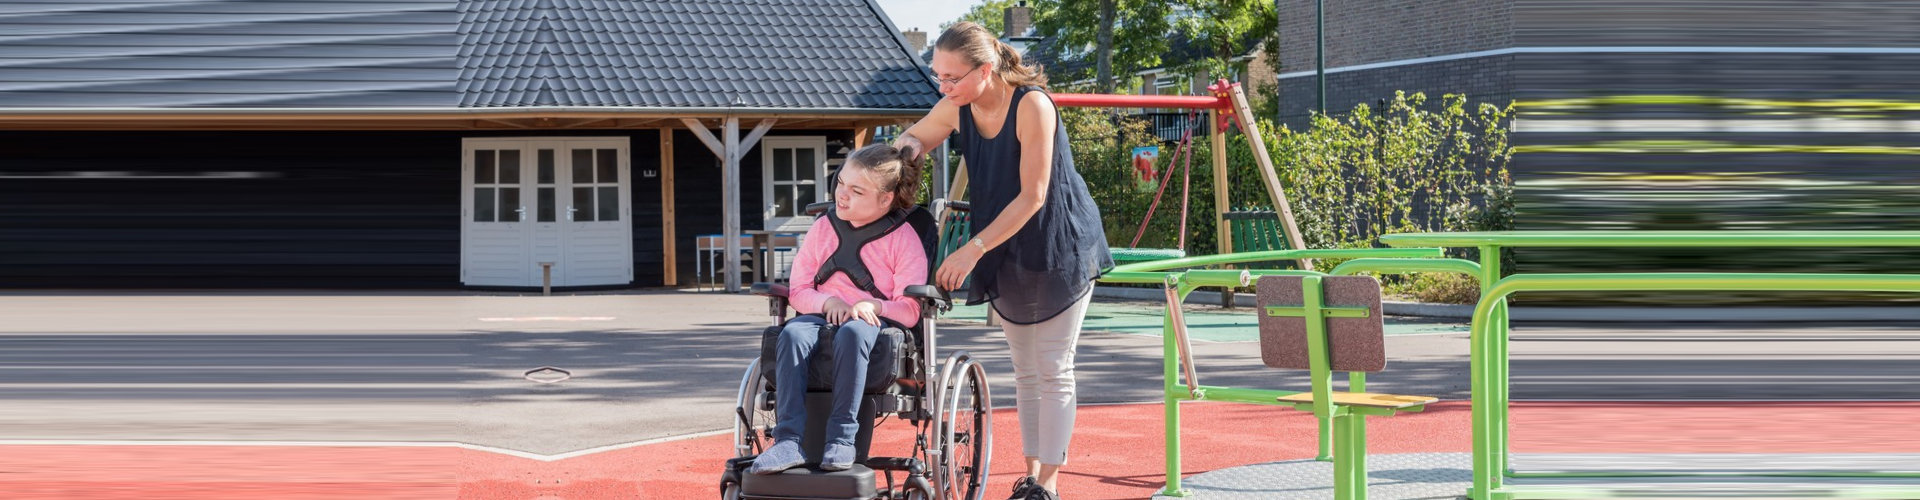 child on a wheelchair accompanied by her caregiver outdoors